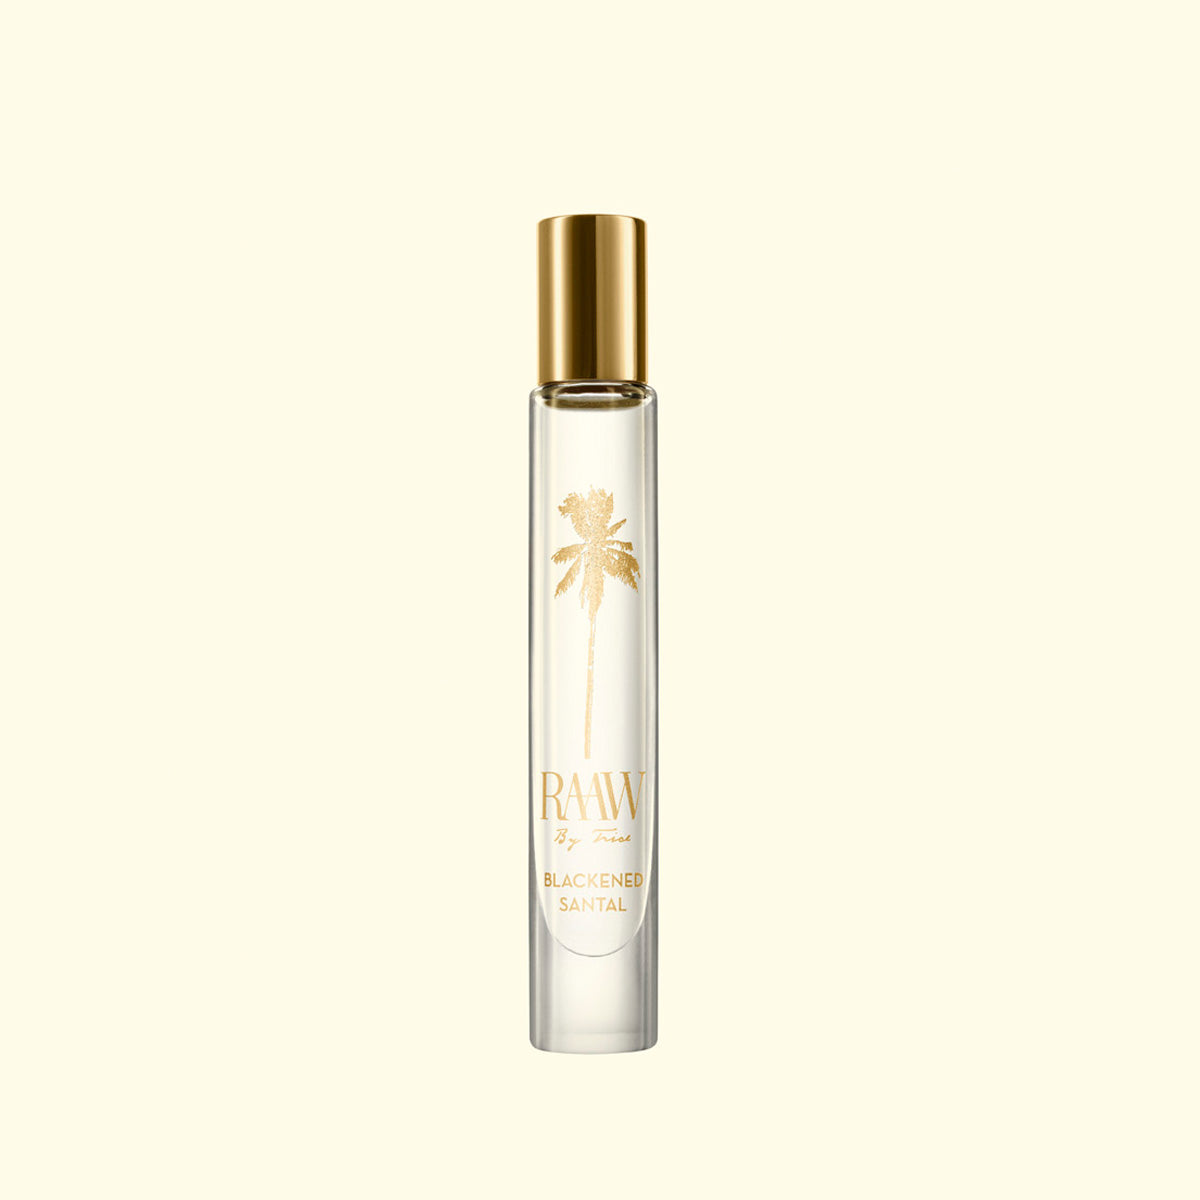 Blackened Santal Perfume Oil from Raaw By Trice